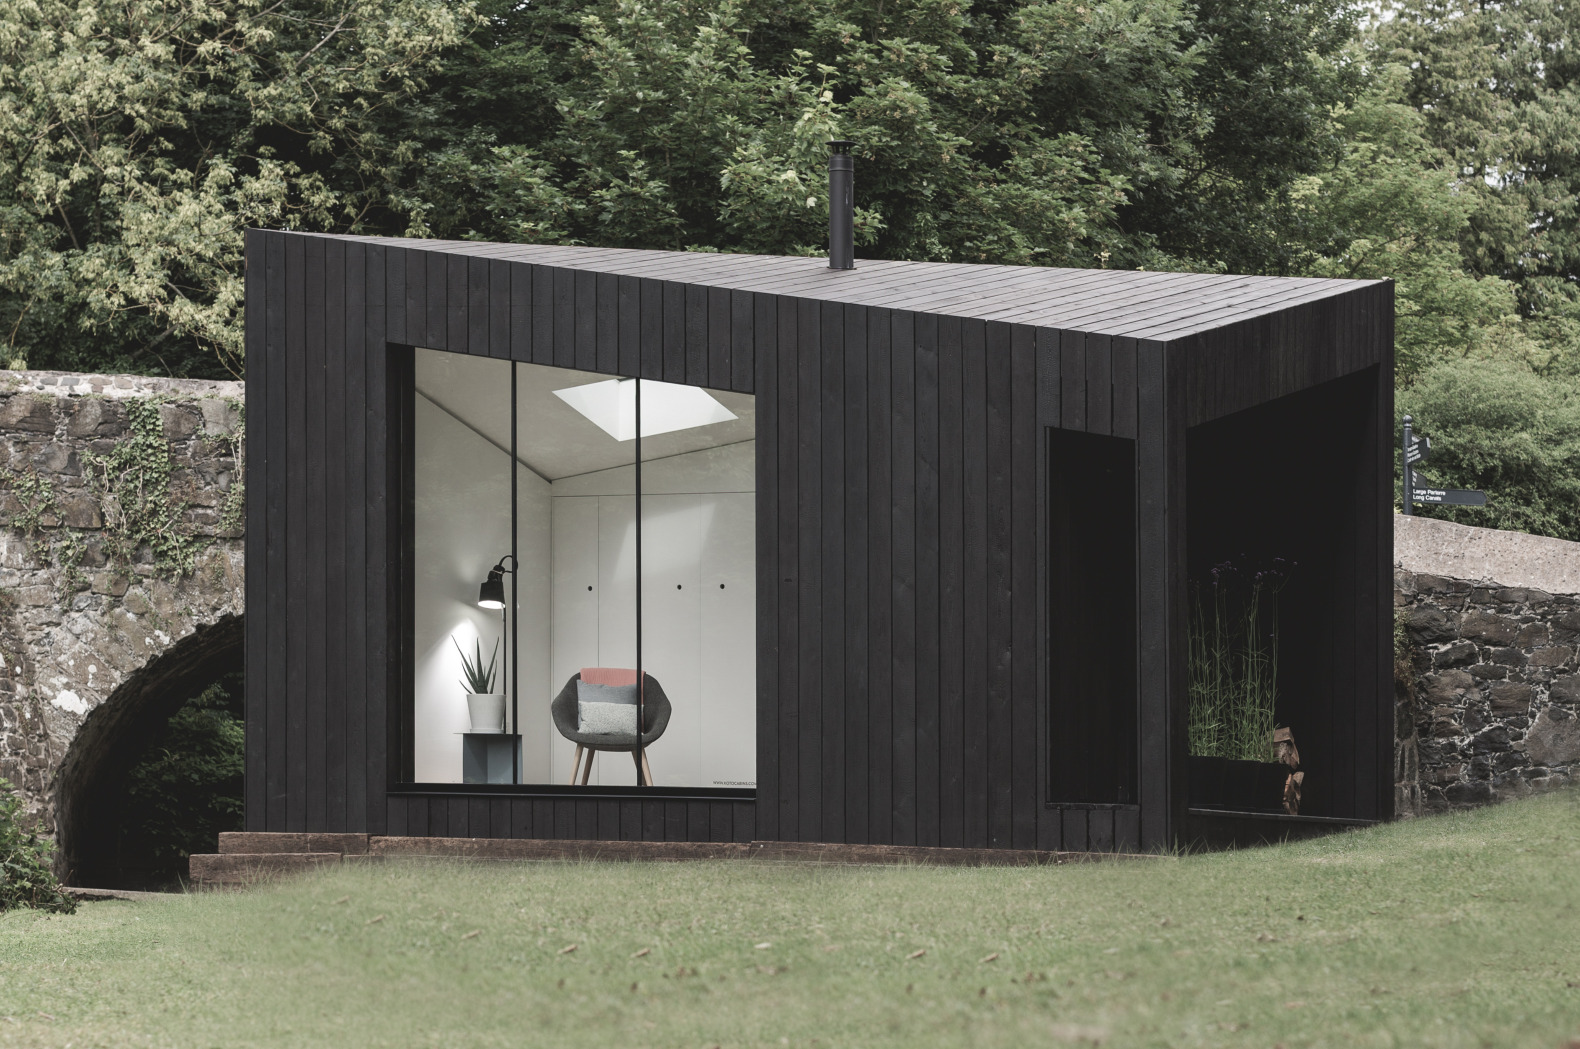 These low-energy prefab cabins are inspired by the Nordic concept of 'friluftsliv'